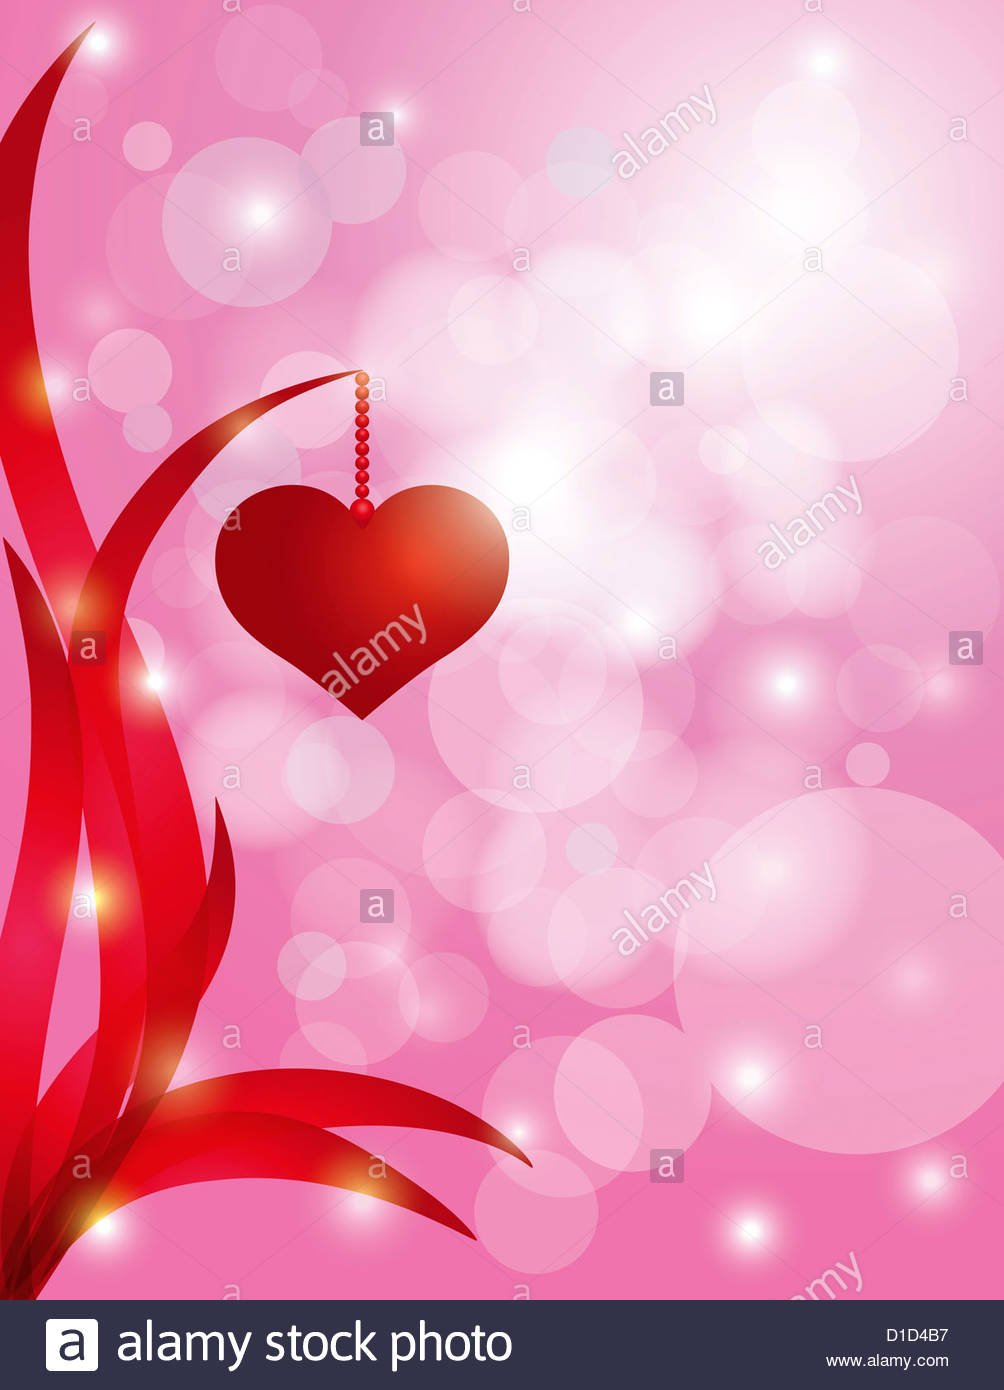 Red Heart Hanging On Swirly Leaf On Sparkling Bokeh Pink